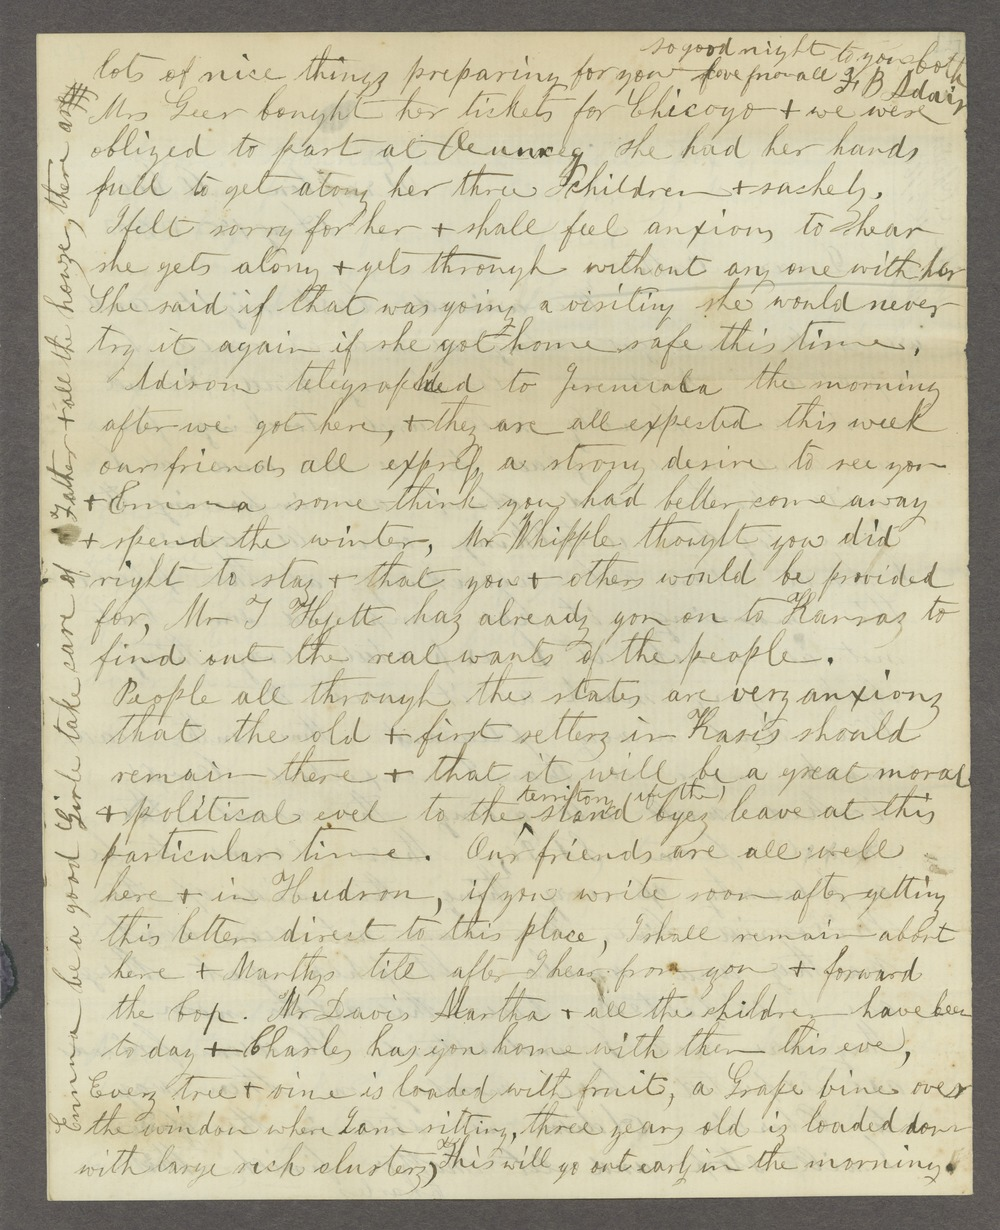 Correspondence between Samuel Lyle Adair, Florella Brown Adair, and their children - 2